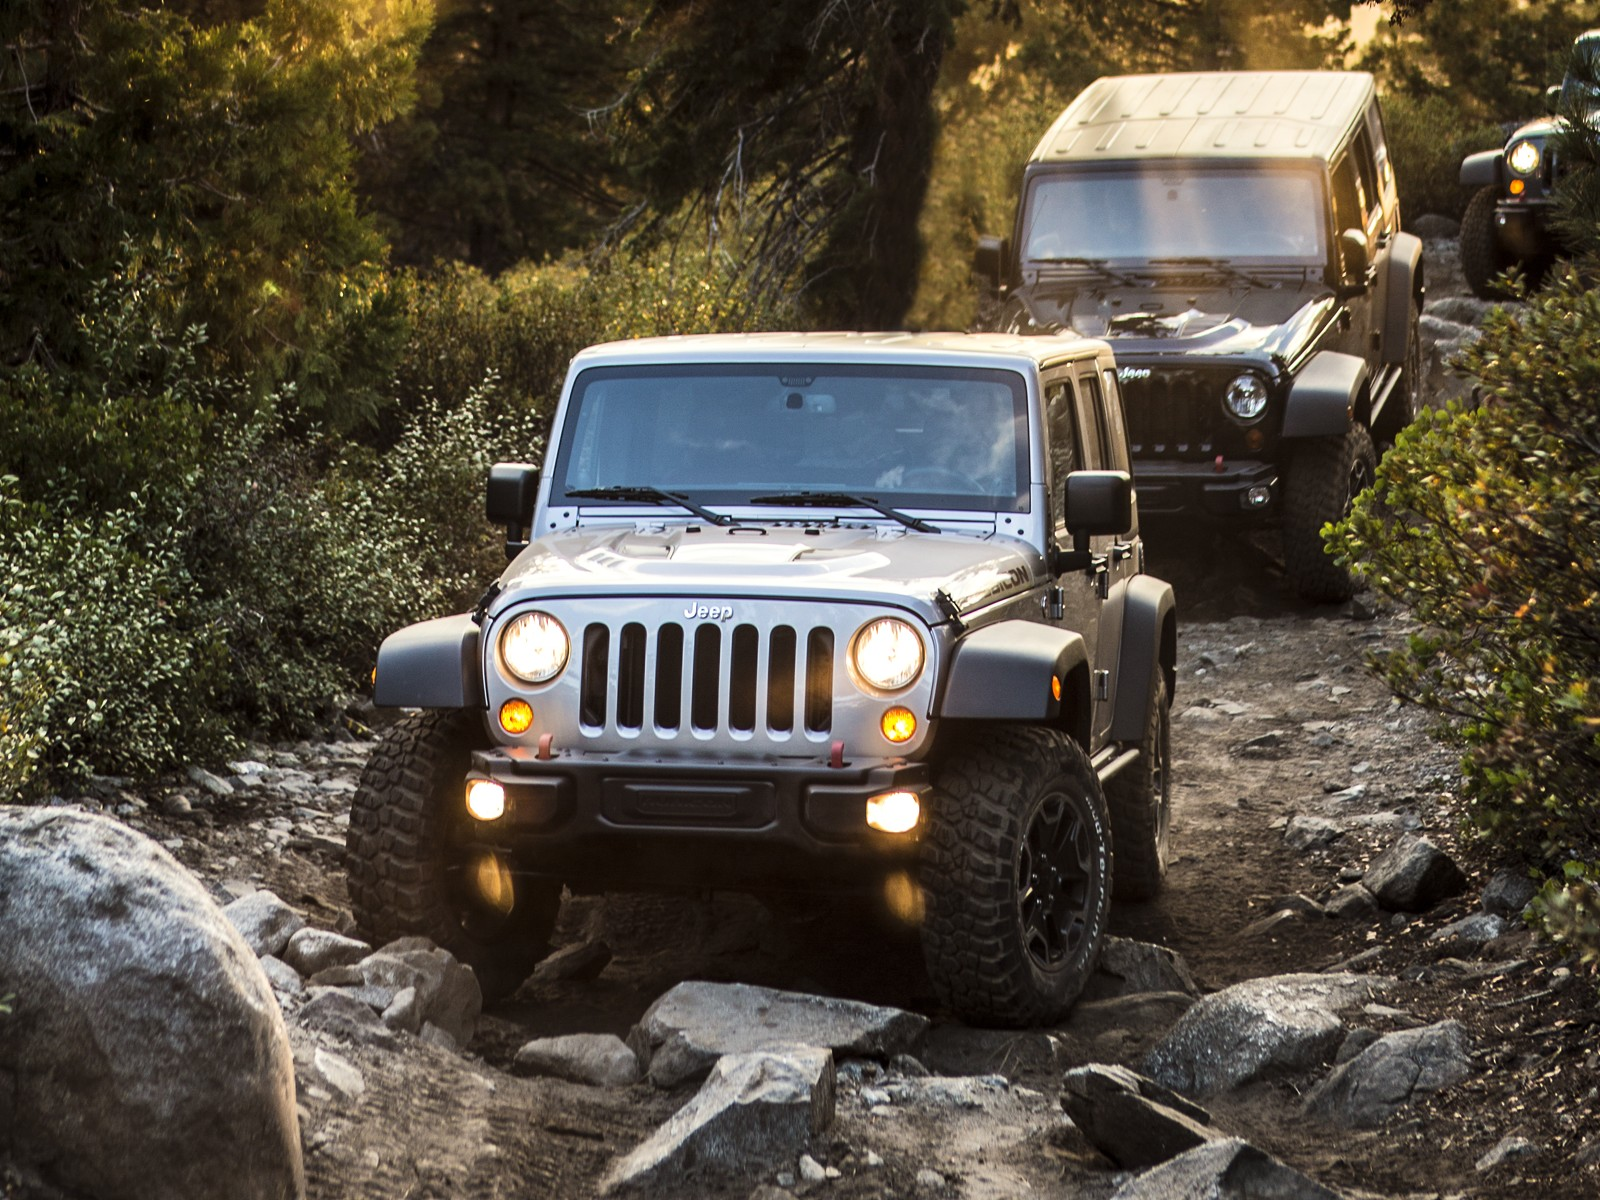 2013 Jeep Wrangler Unlimited Rubicon 10th Offroad 4x4 Gg